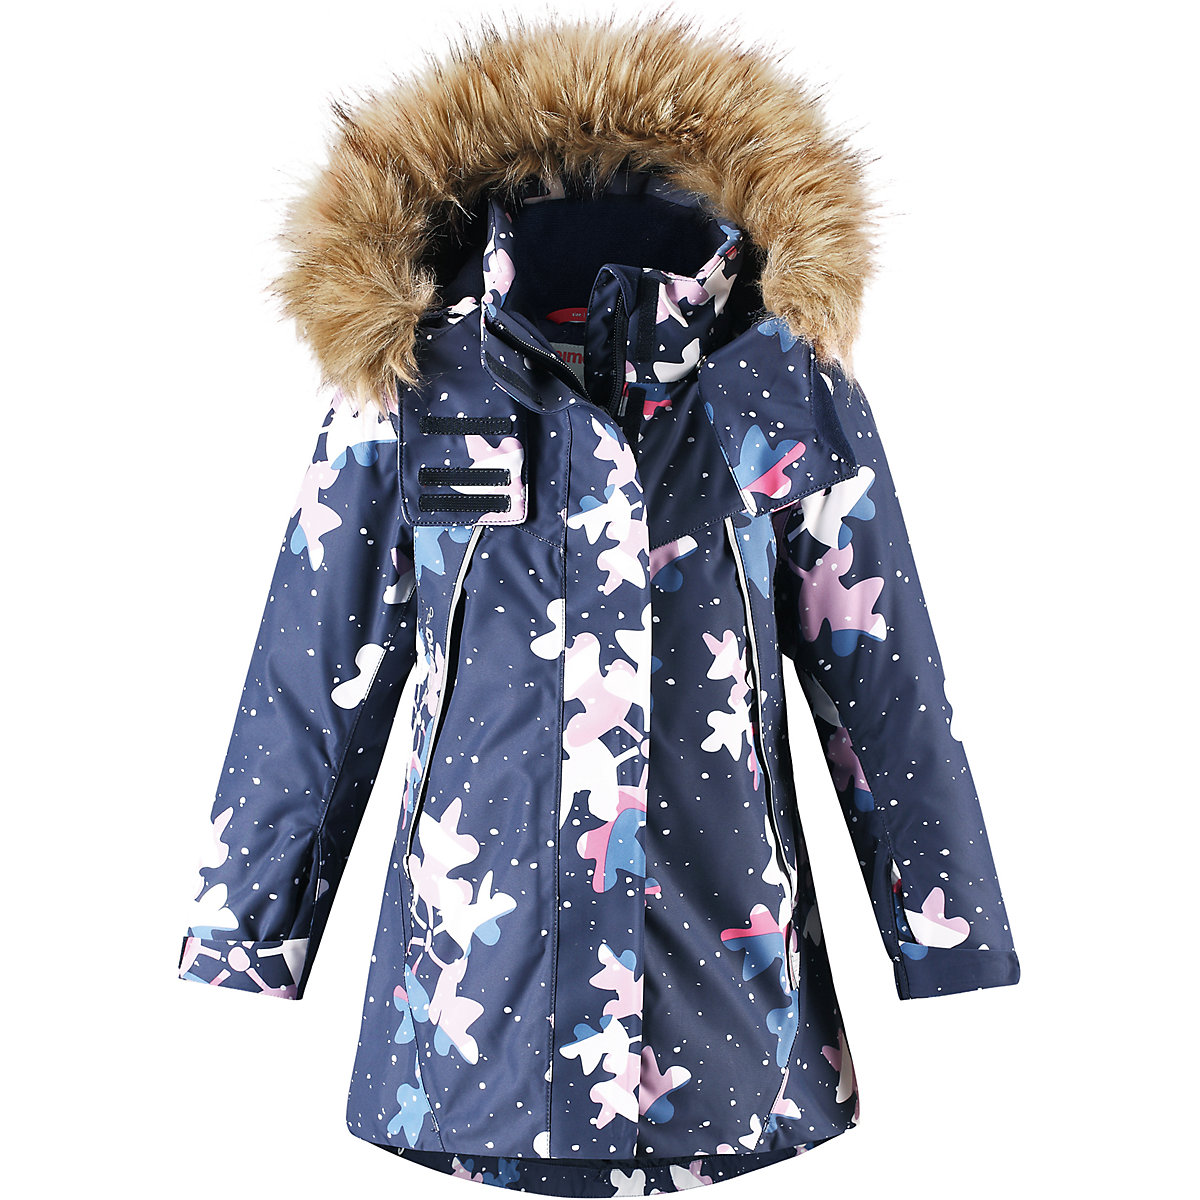 REIMA Jackets & Coats 8665394 for girls baby clothing winter warm boy girl jacket Polyester motorcycle jacket men winter motorcycle riding jacket windproof reflective motorbike clothing moto jaqueta motorcycle racing